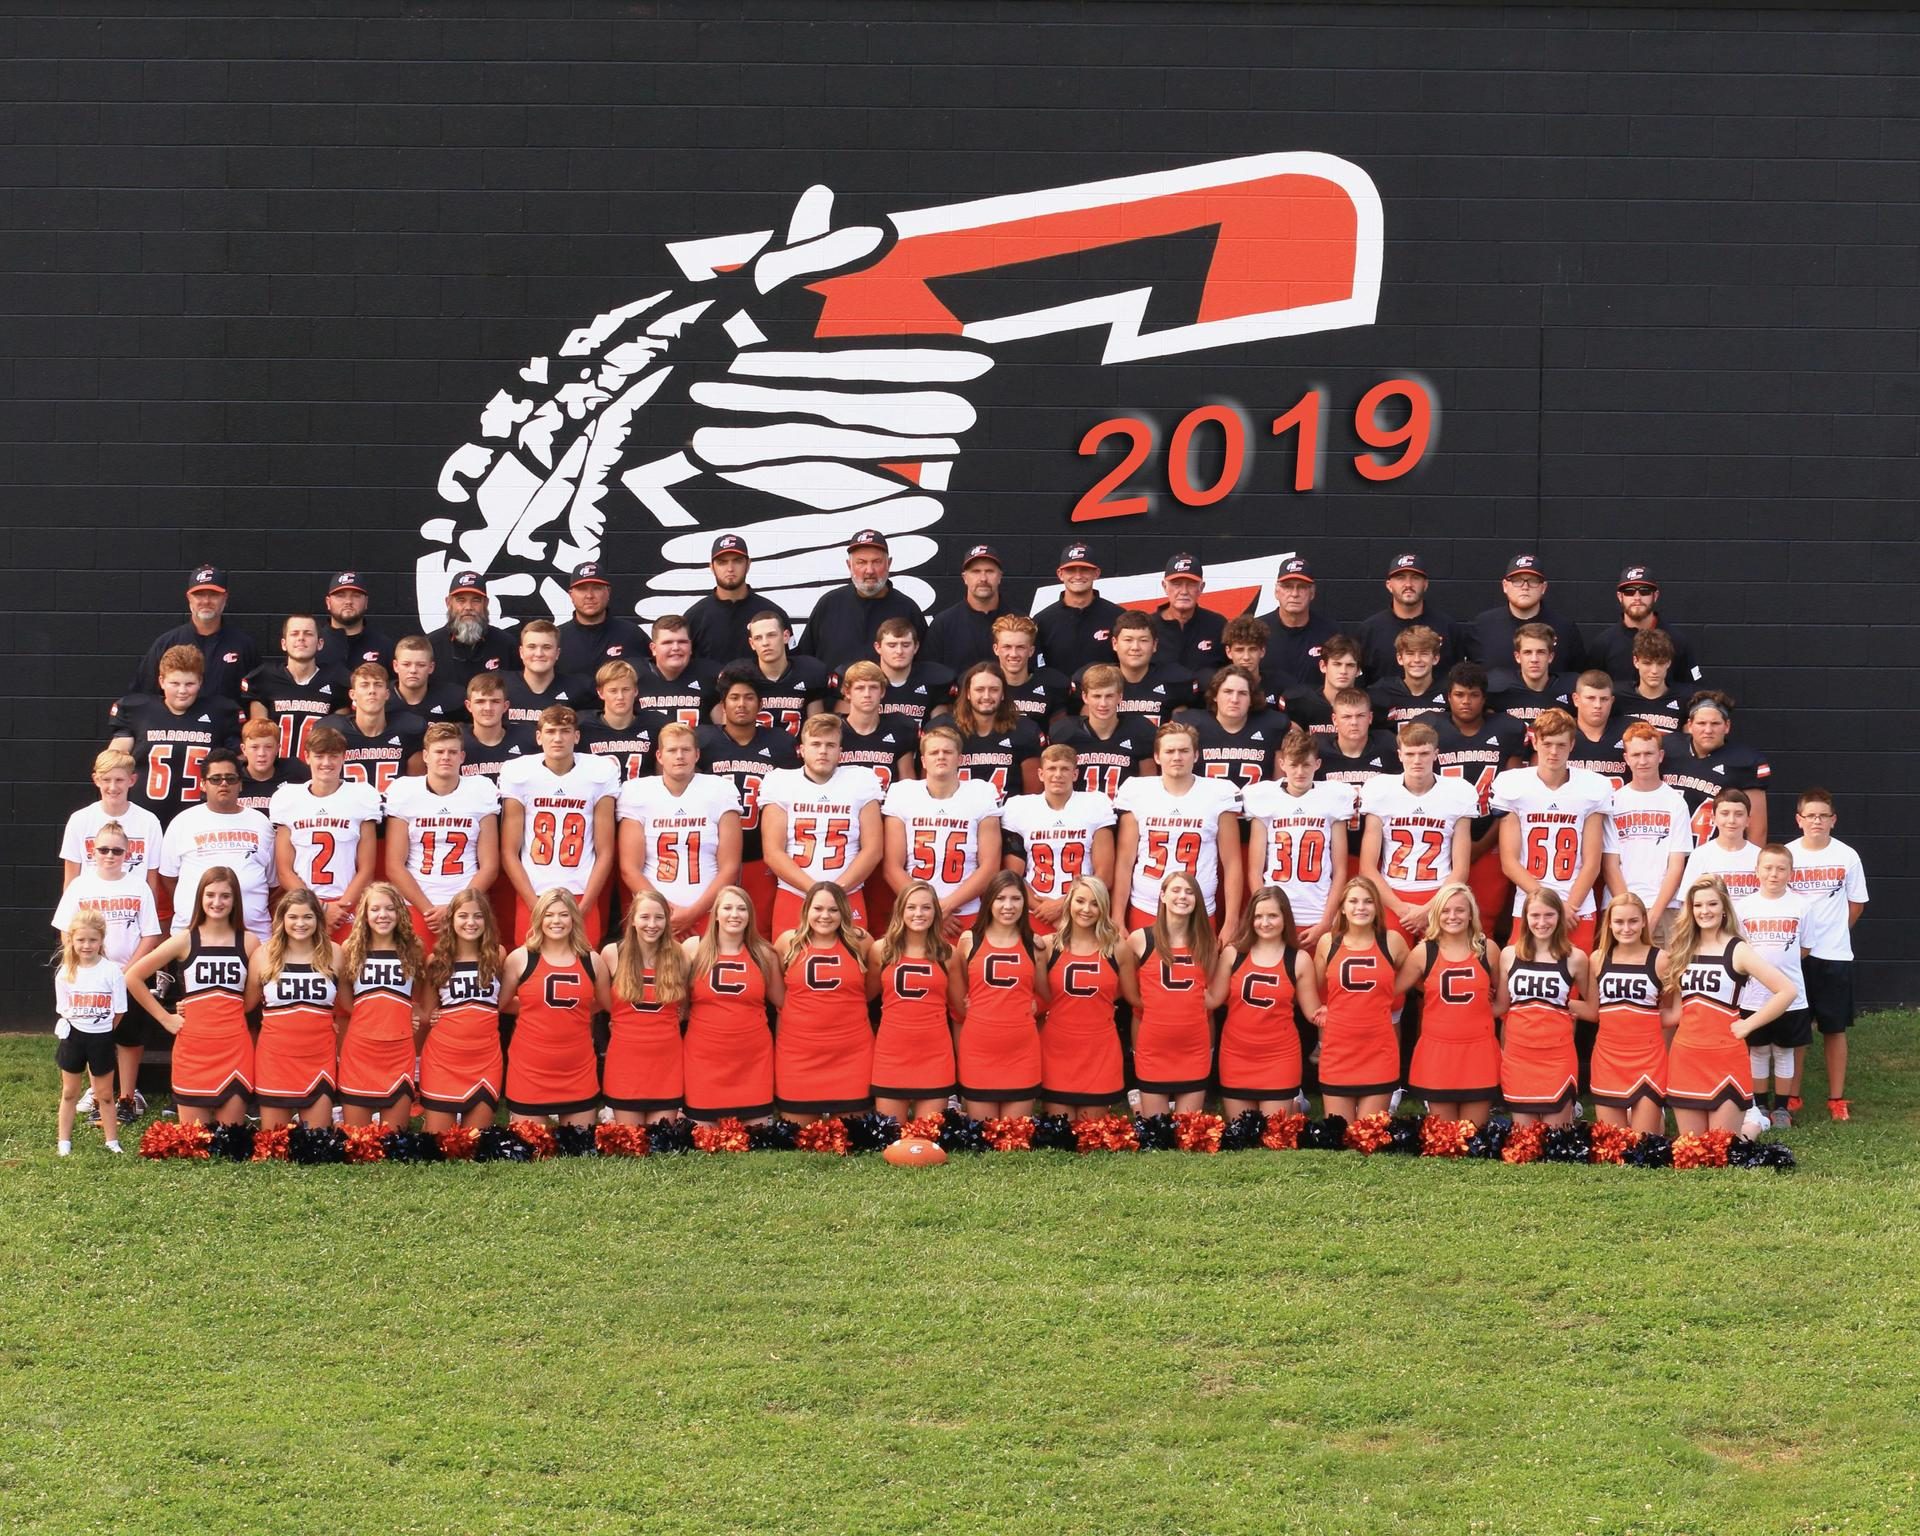 2019-2020 Chilhowie High School Football Team, Cheerleaders and Coaches